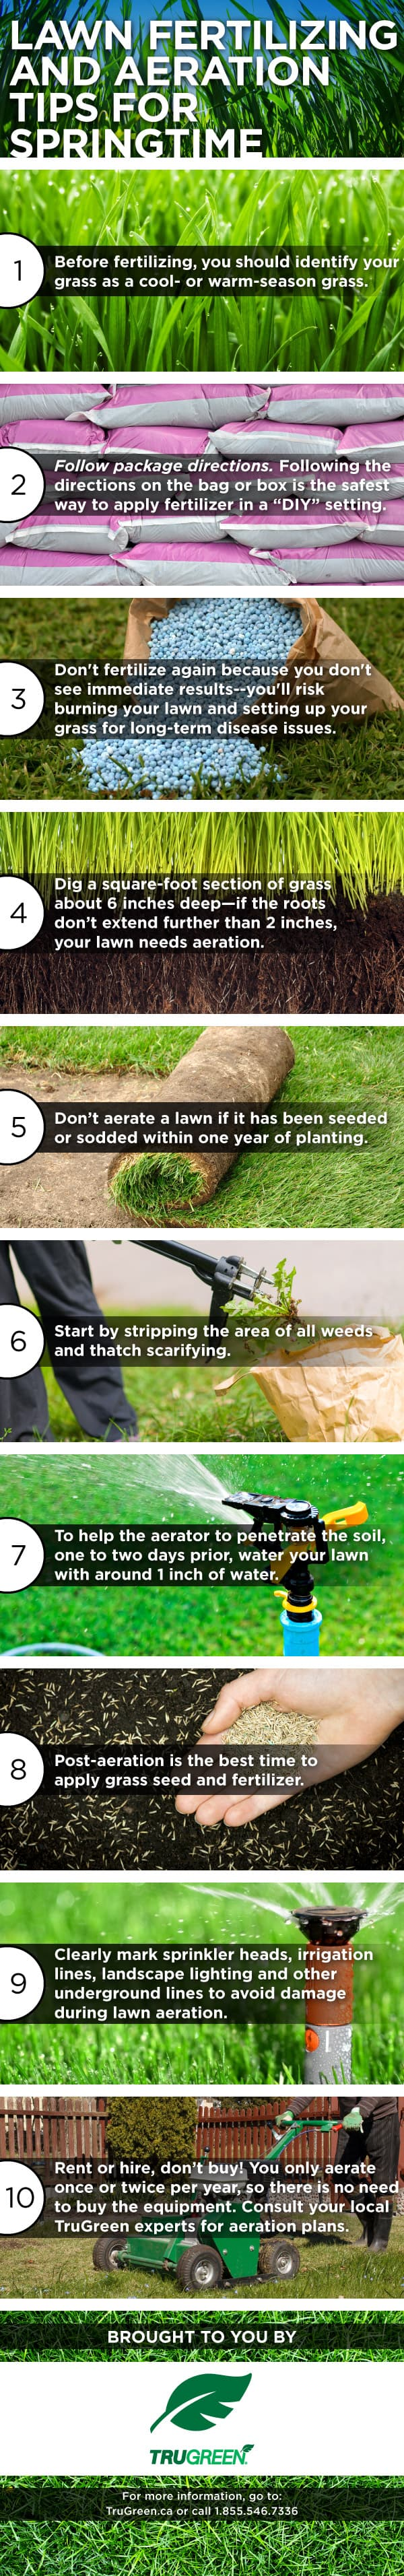 7 Spring Lawn Care Tips - Get your lawn looking its best with these simple tips.